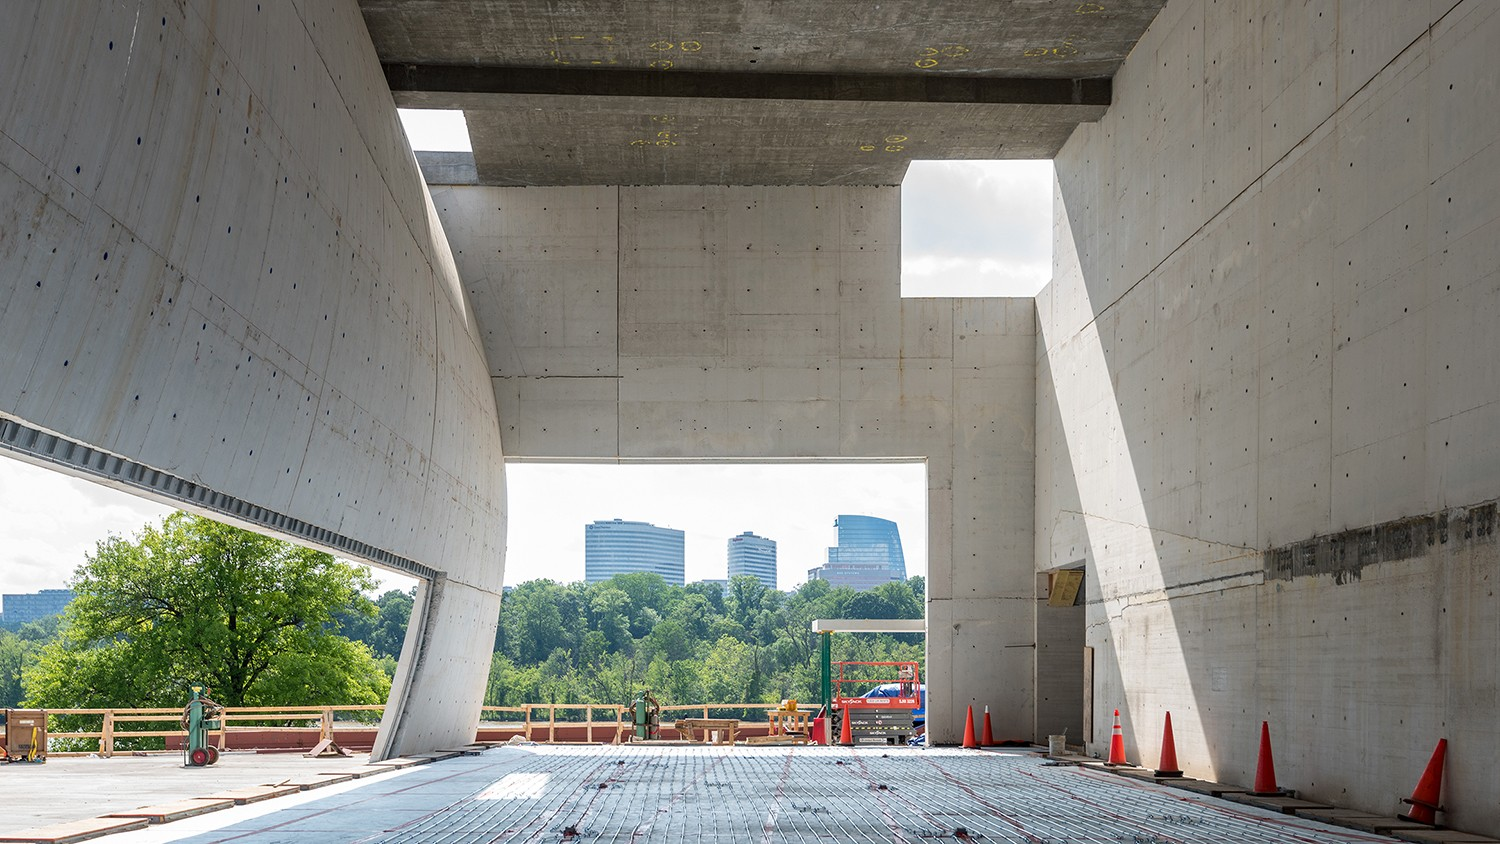 https://s3.us-east-2.amazonaws.com/steven-holl/uploads/projects/project-images/JonathanMorefield__JFK_2018_05_25-Kennedy Center Expansion-DSC_2847_WH.jpg